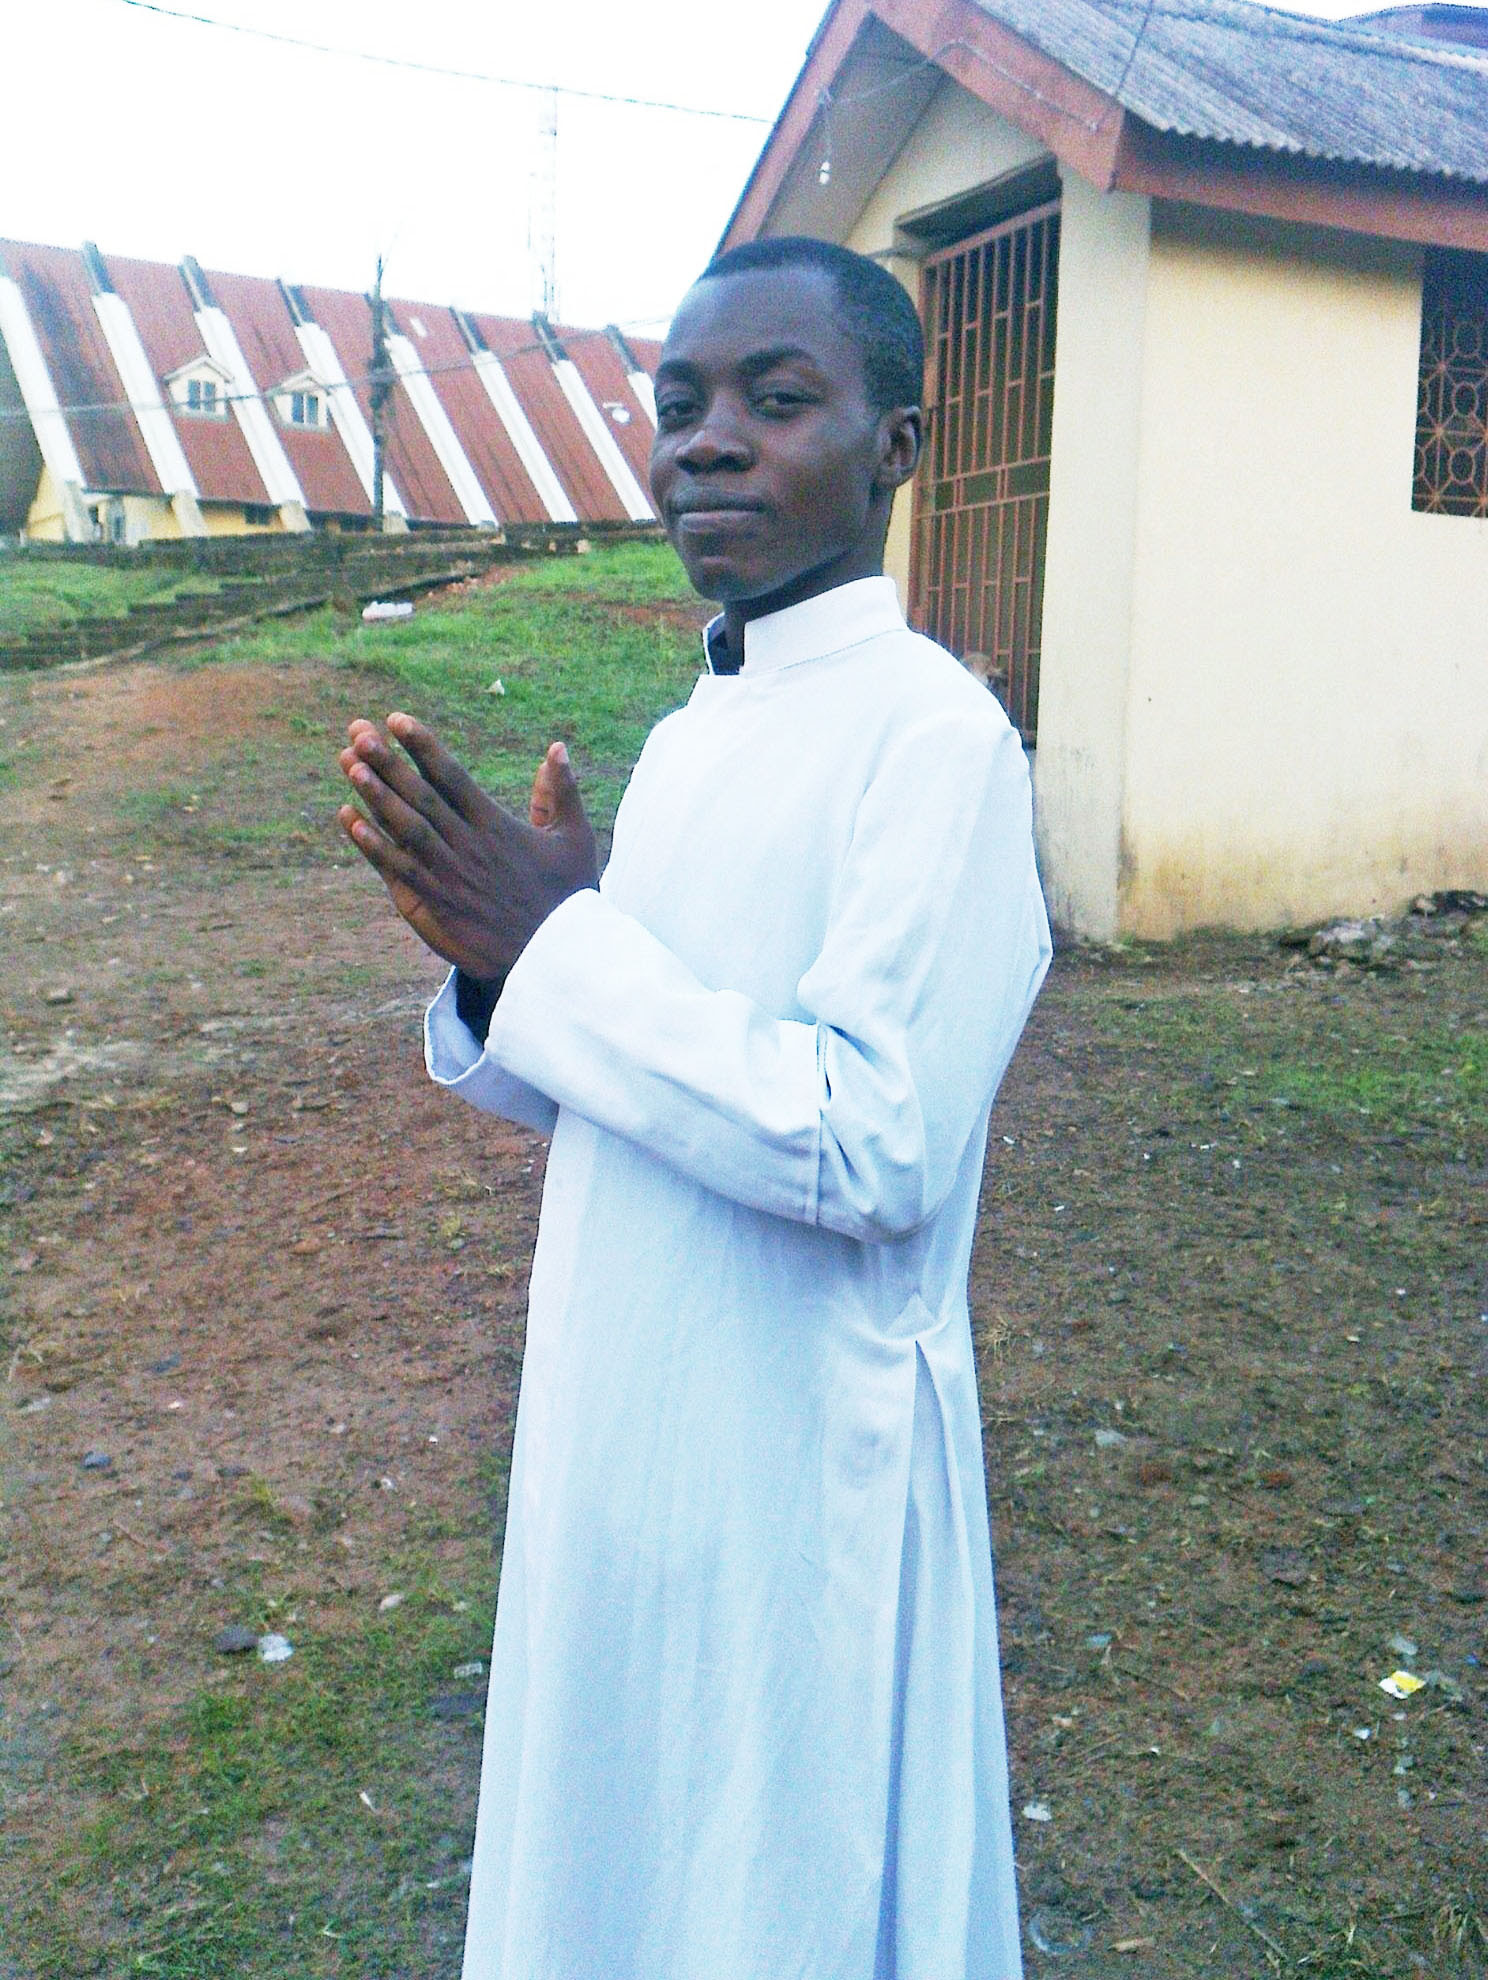 The Rev. David Ayeola, 26, was kidnapped and killed in southwestern Nigeria. (Morning Star News courtesy of African Church)